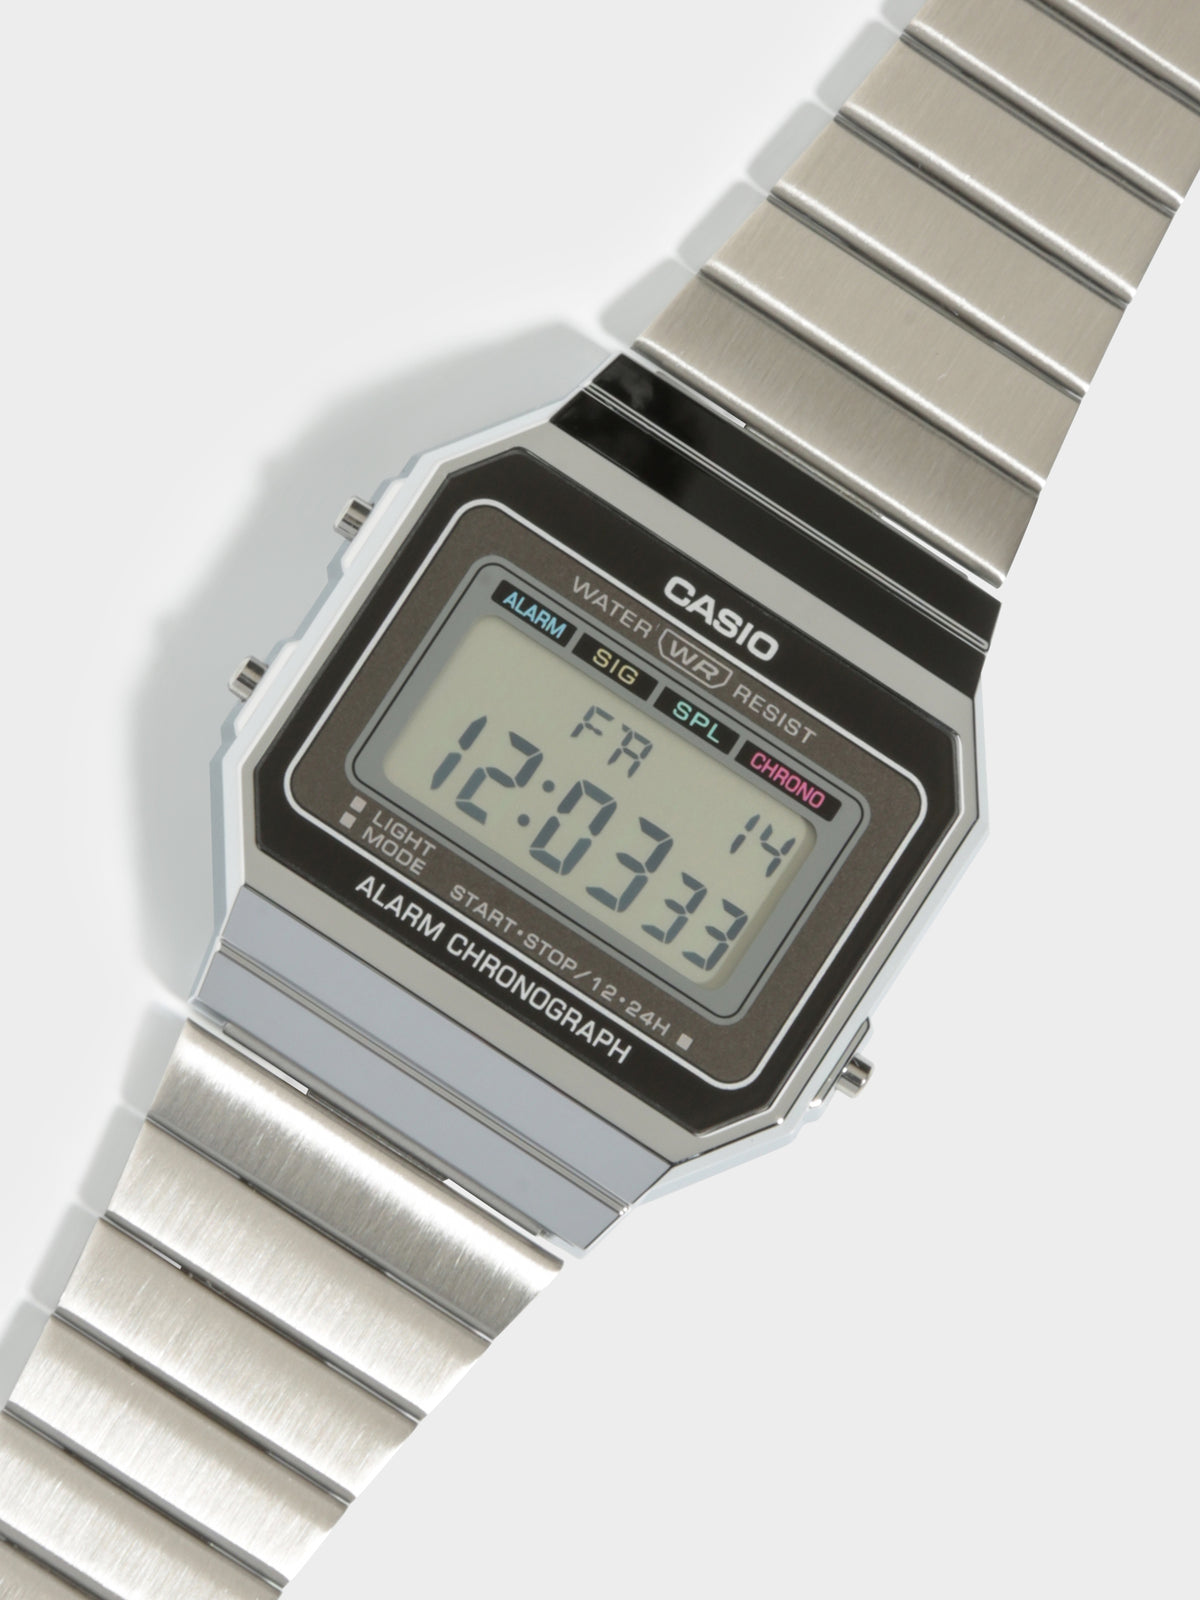 Super Slim A700 Digital Watch in Sliver